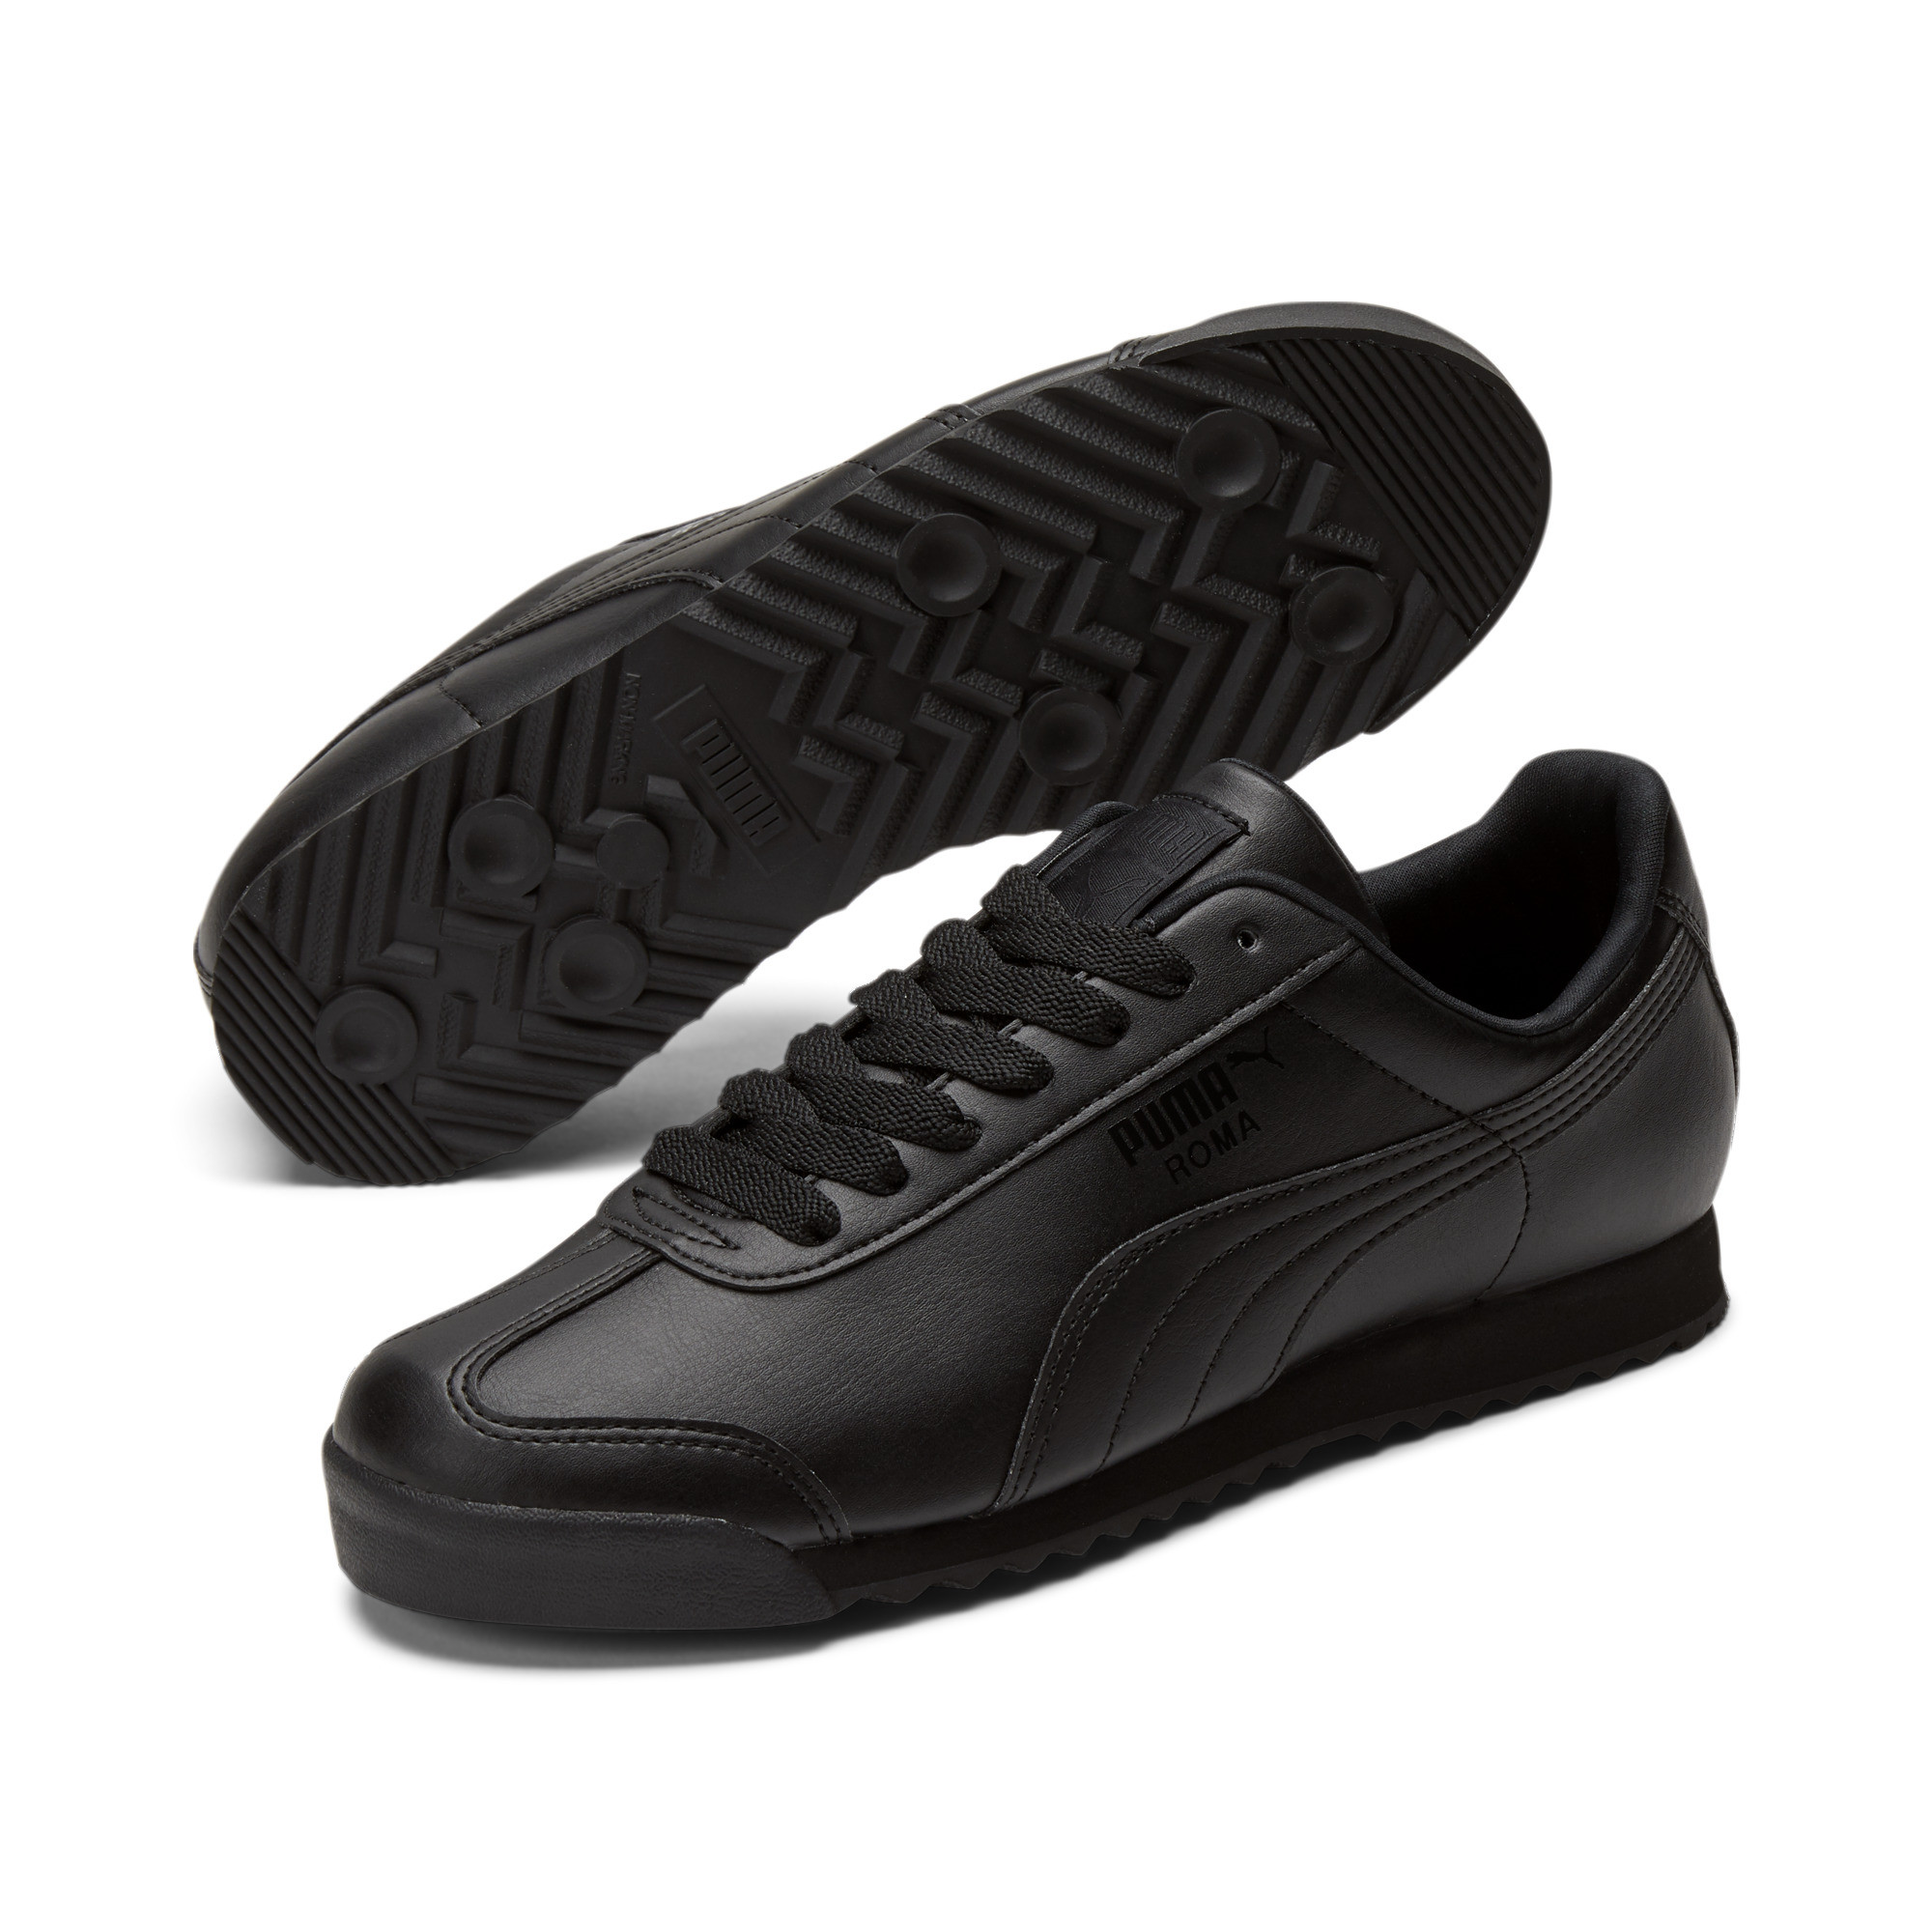 PUMA-Men-039-s-Roma-Basic-Sneakers